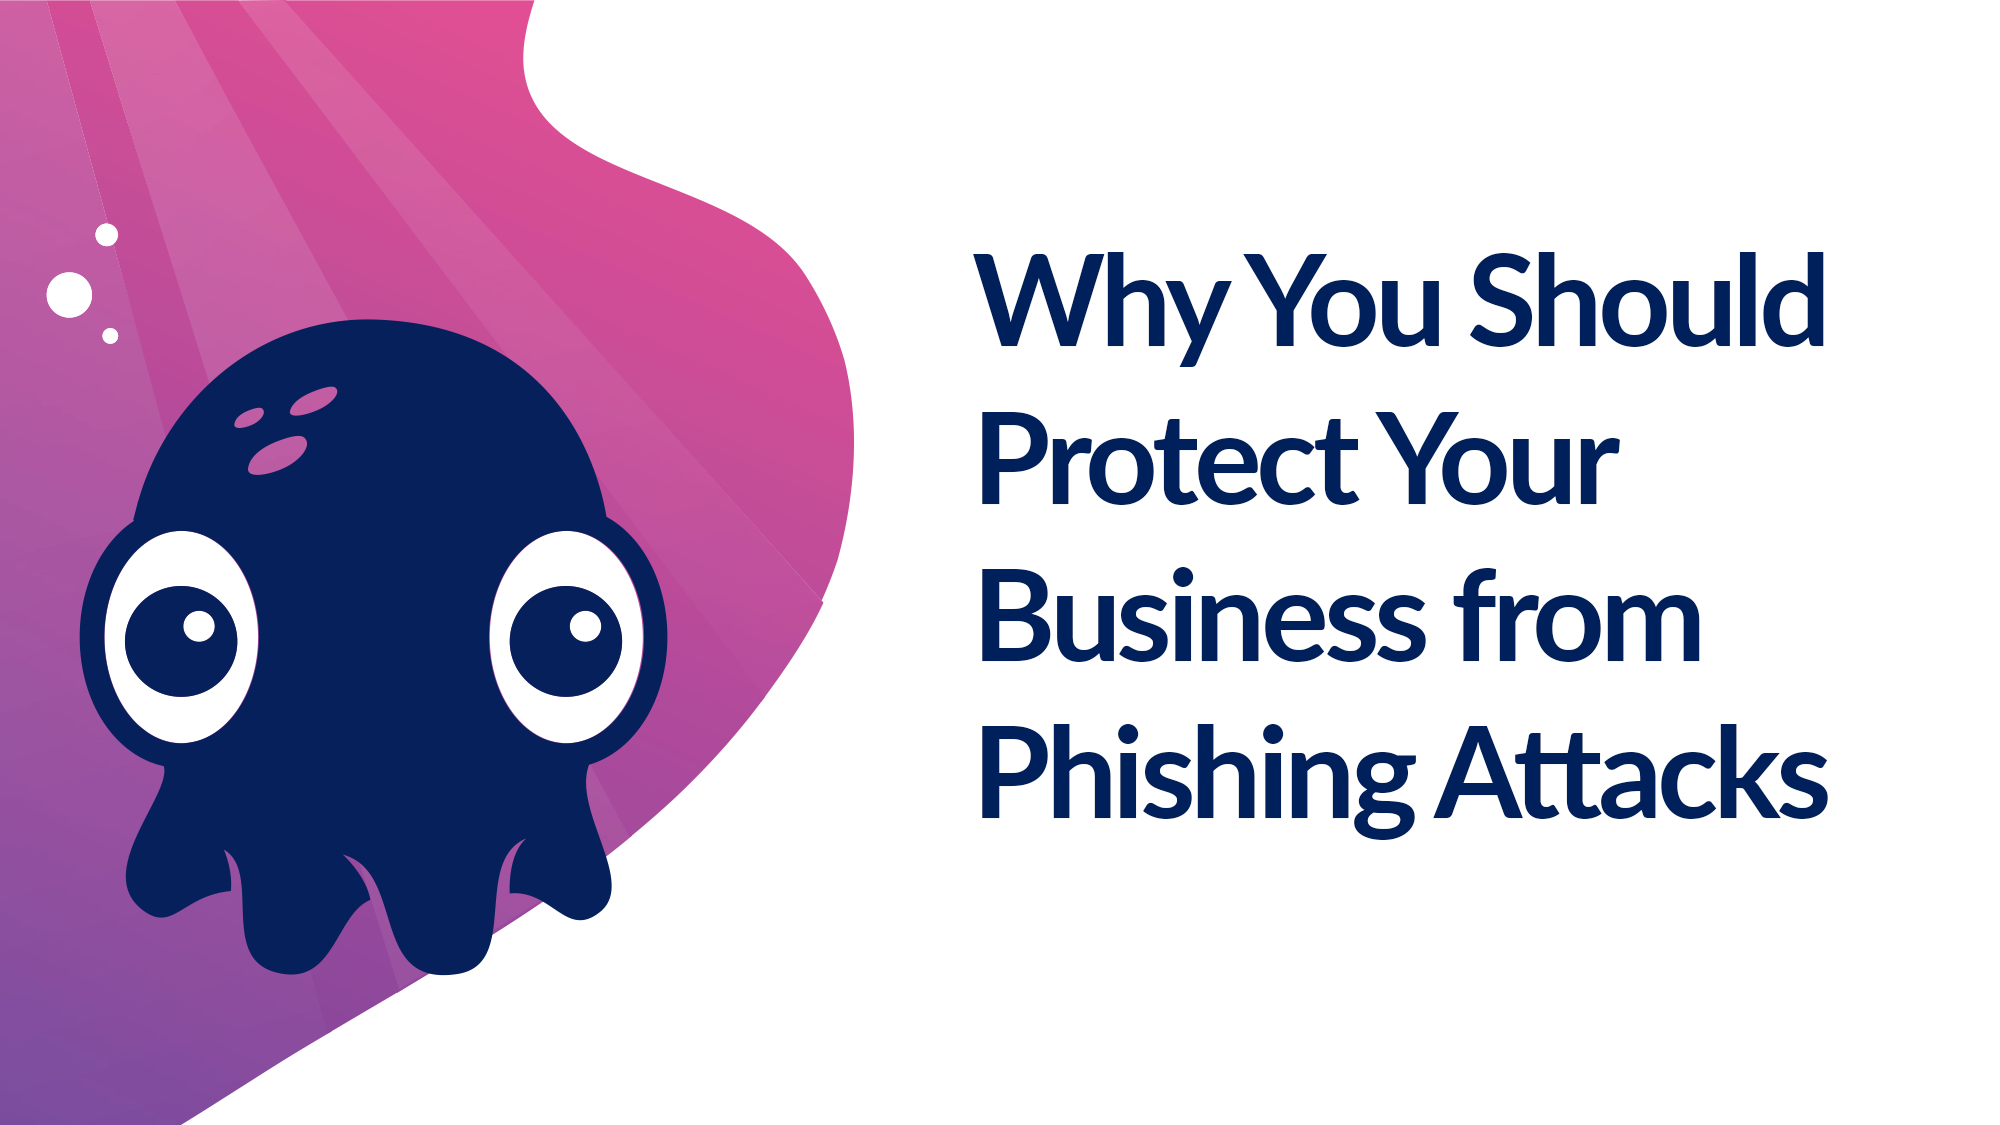 Why You Should Protect Your Business from Phishing